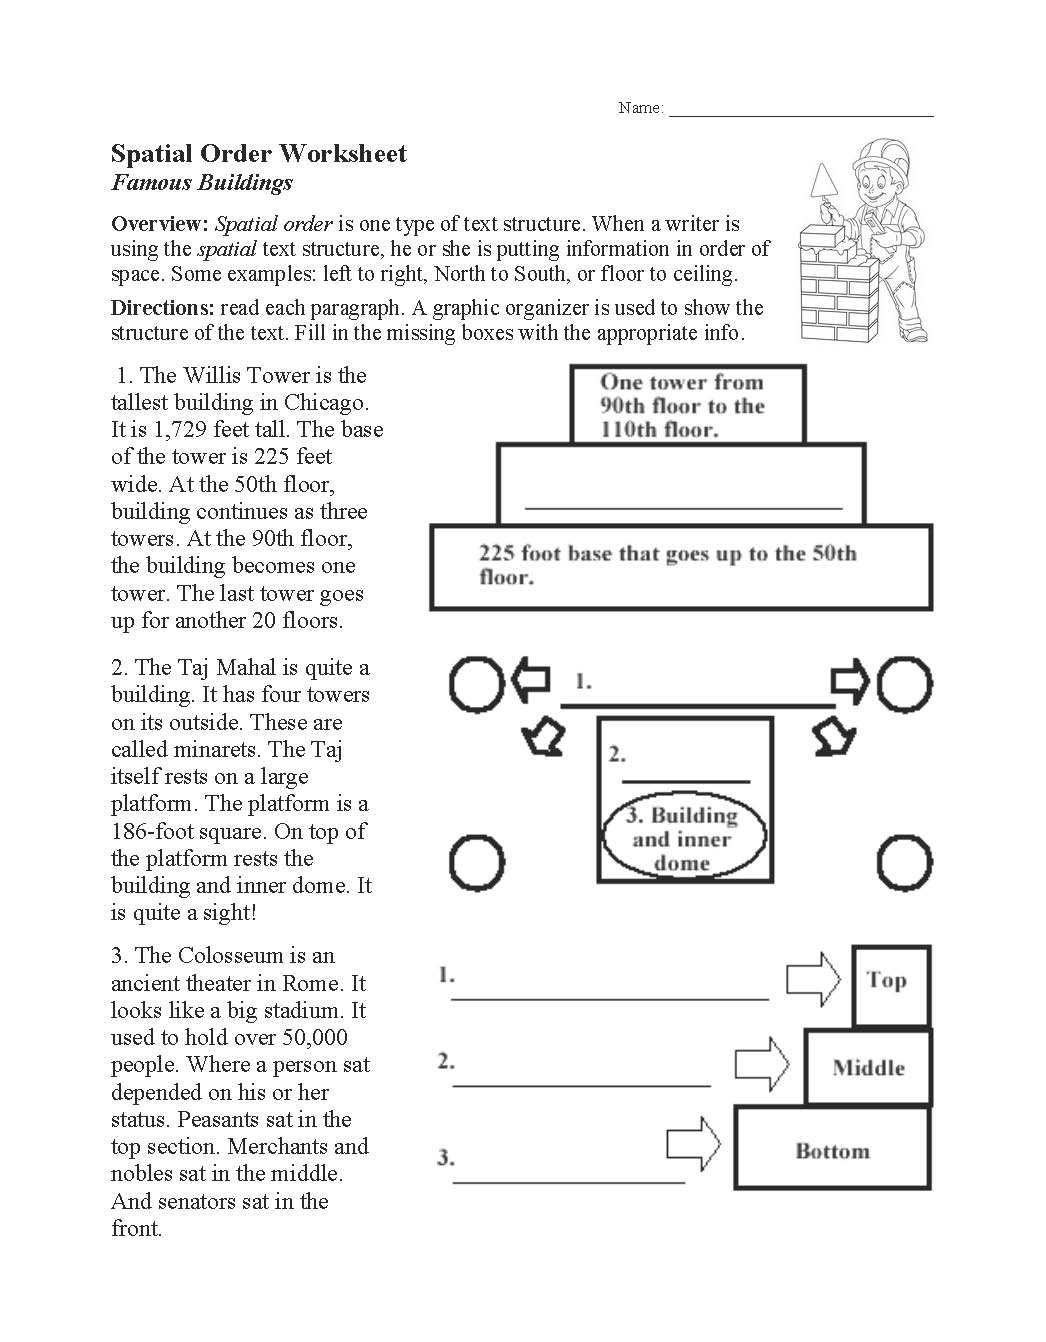 This is a preview image of our Spatial Order Worksheet. Click on it to enlarge or view the source file.